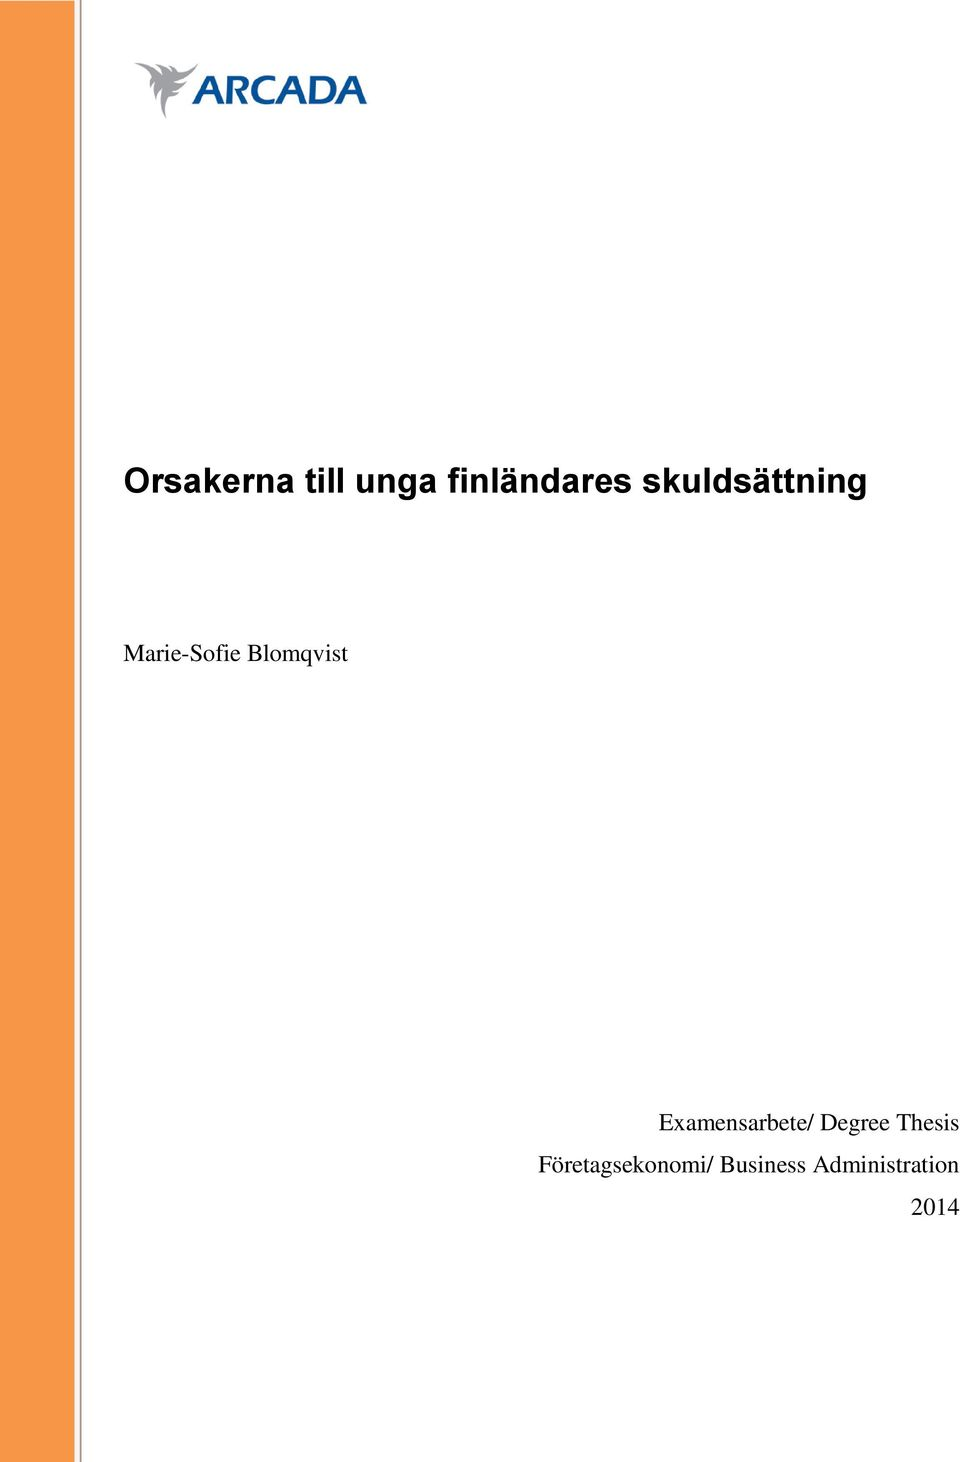 Examensarbete/ Degree Thesis